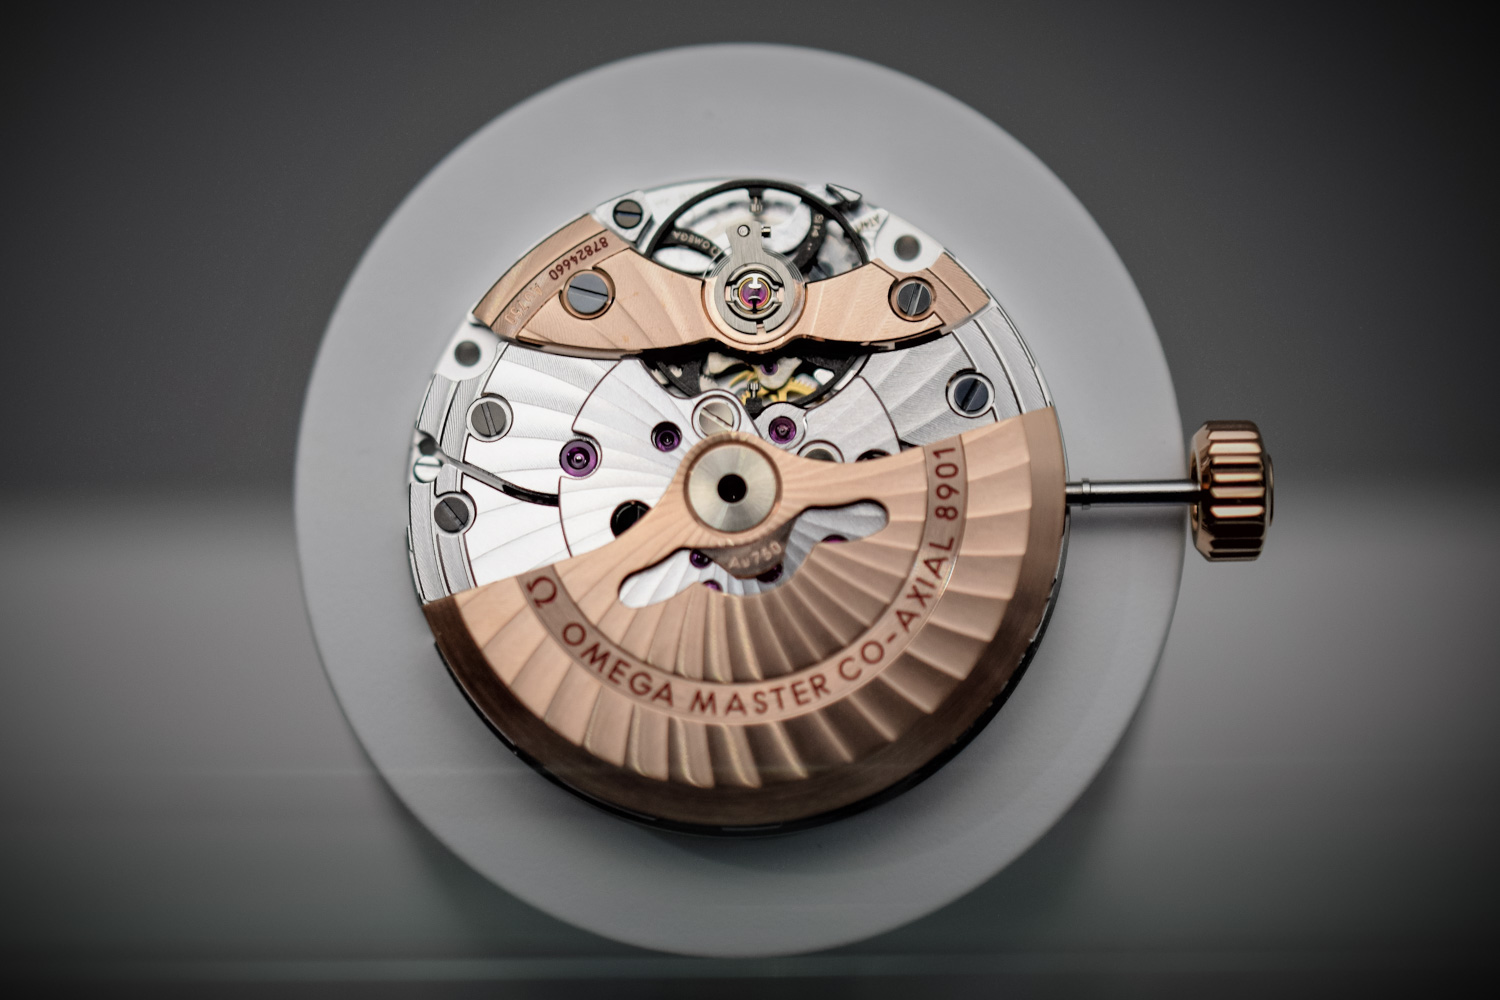 Omega Calibre Master Chronometer Co-Axial 8901